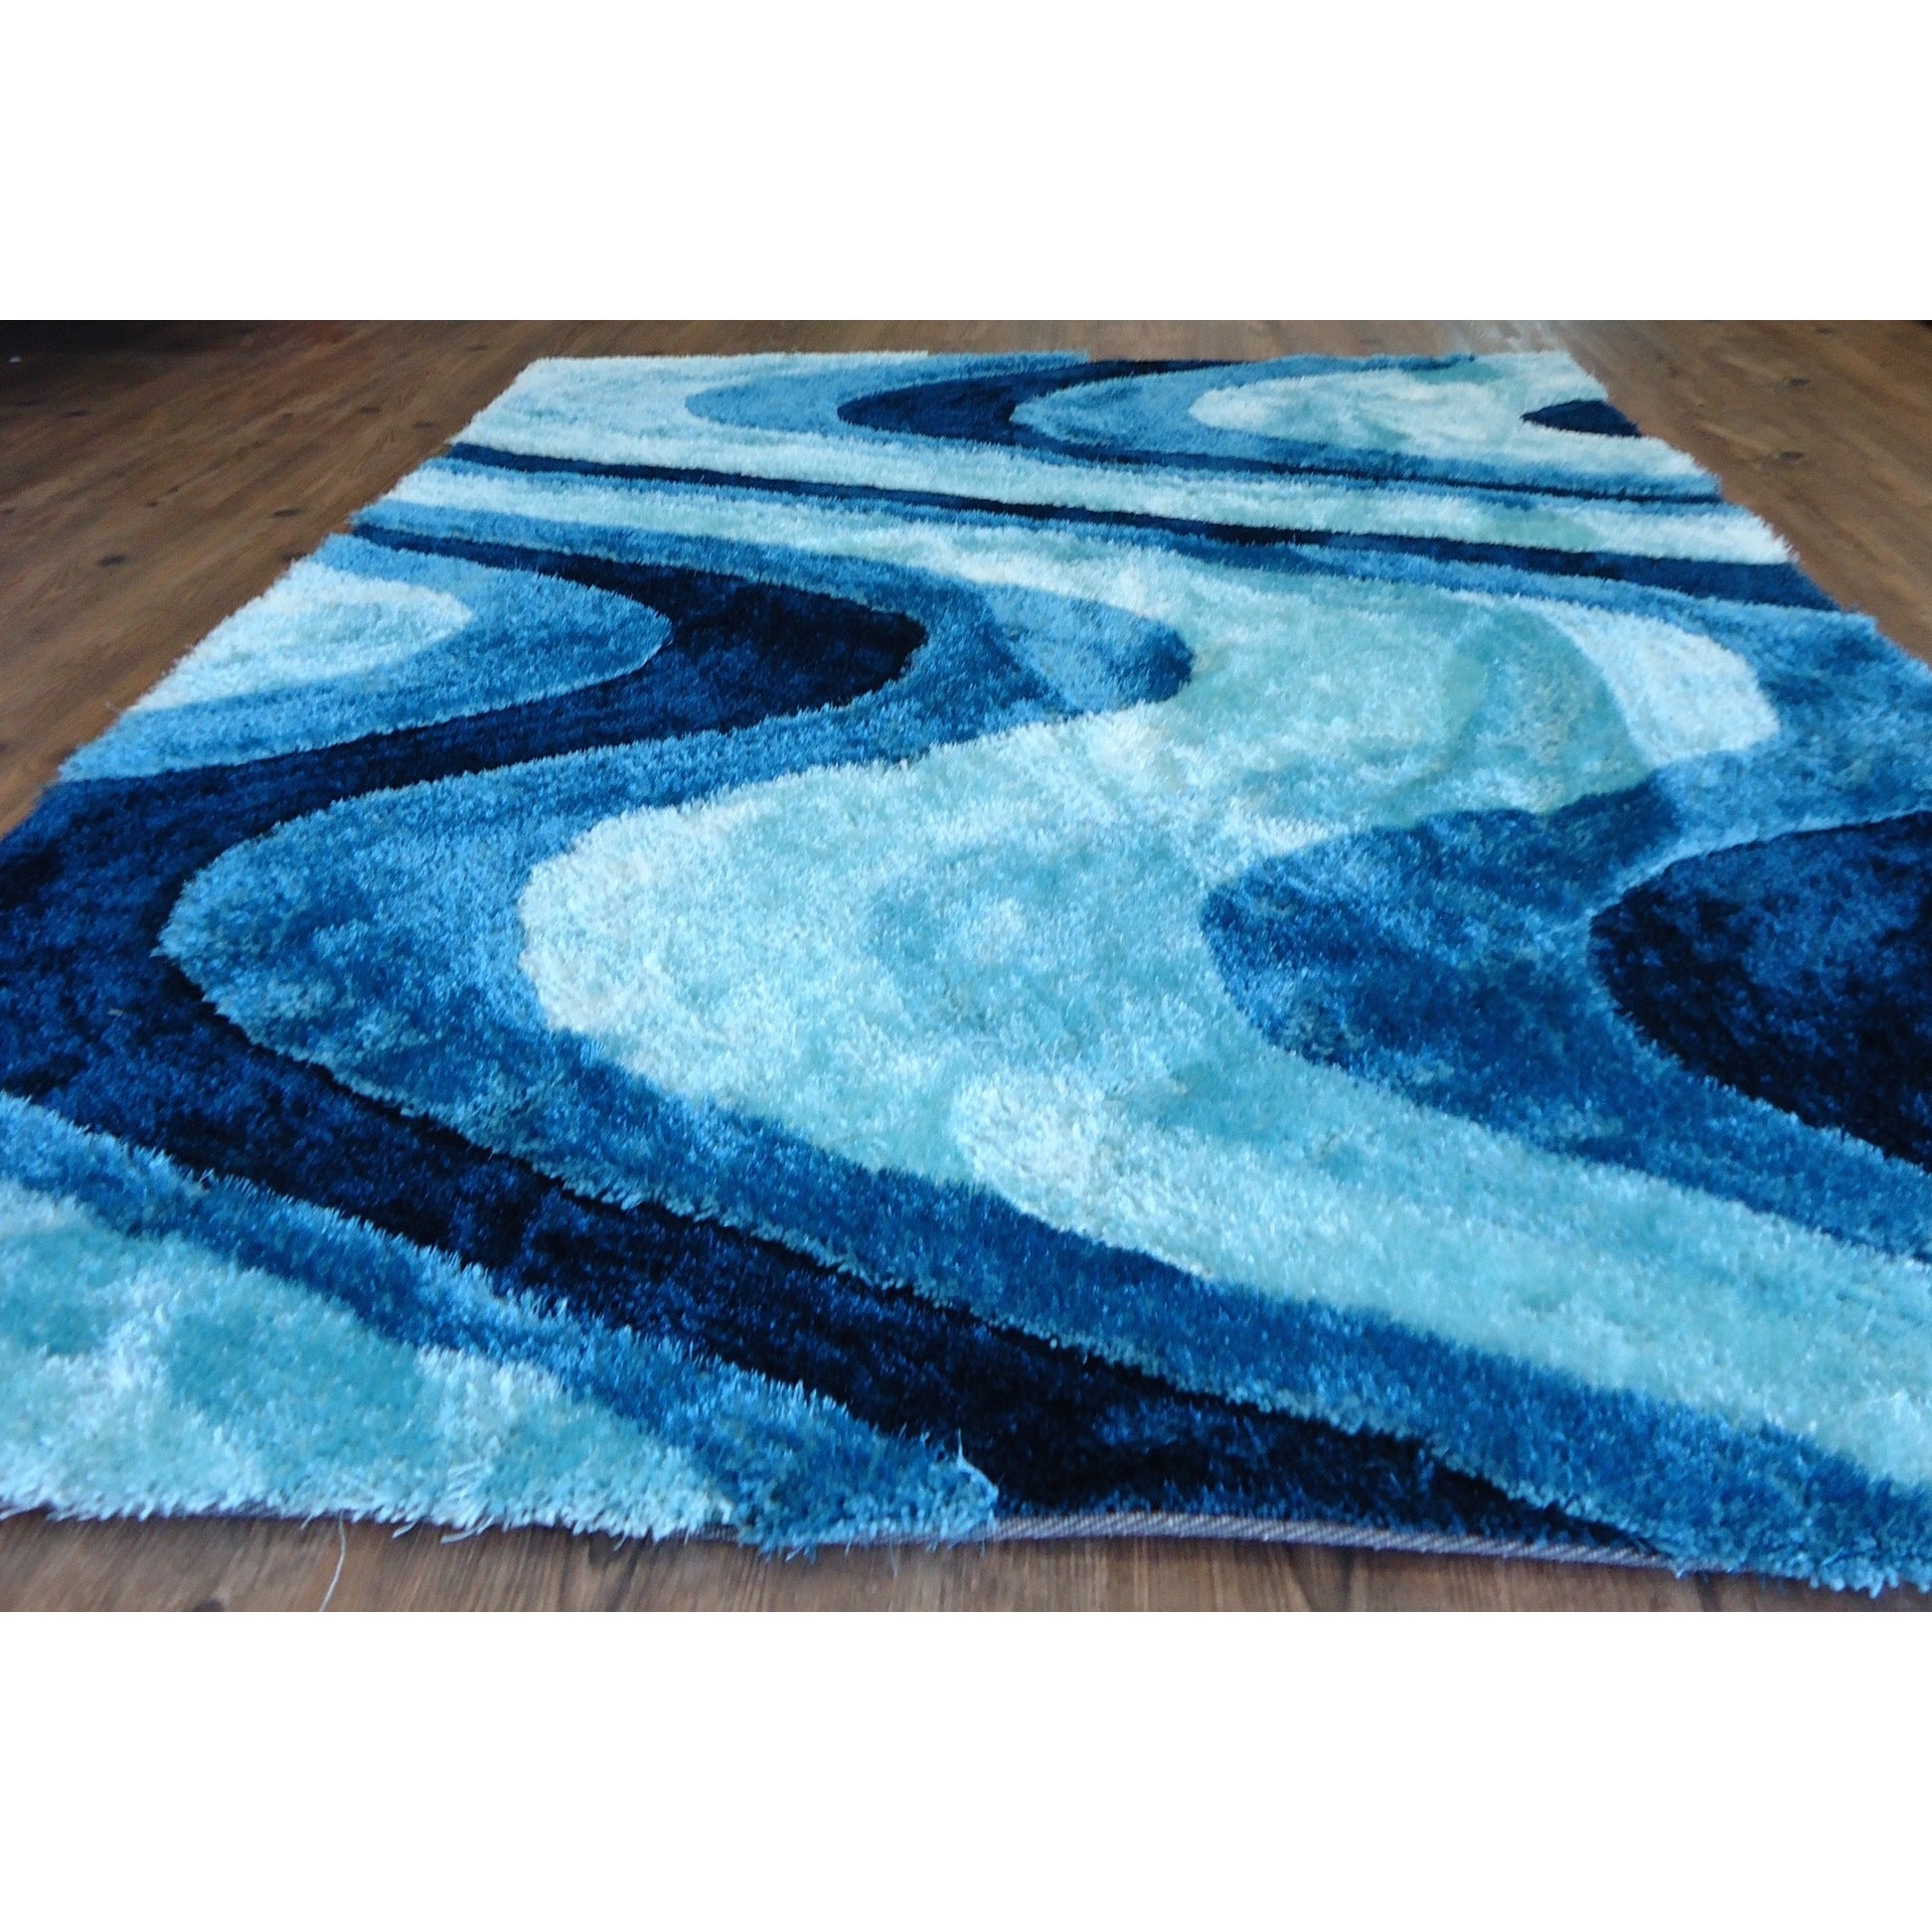 Shop Black Friday Deals On Vibrant Waves Hand Tufted Turquoise Blue And Navy Blue Shag Area Rug 5 X 7 Overstock 12611684